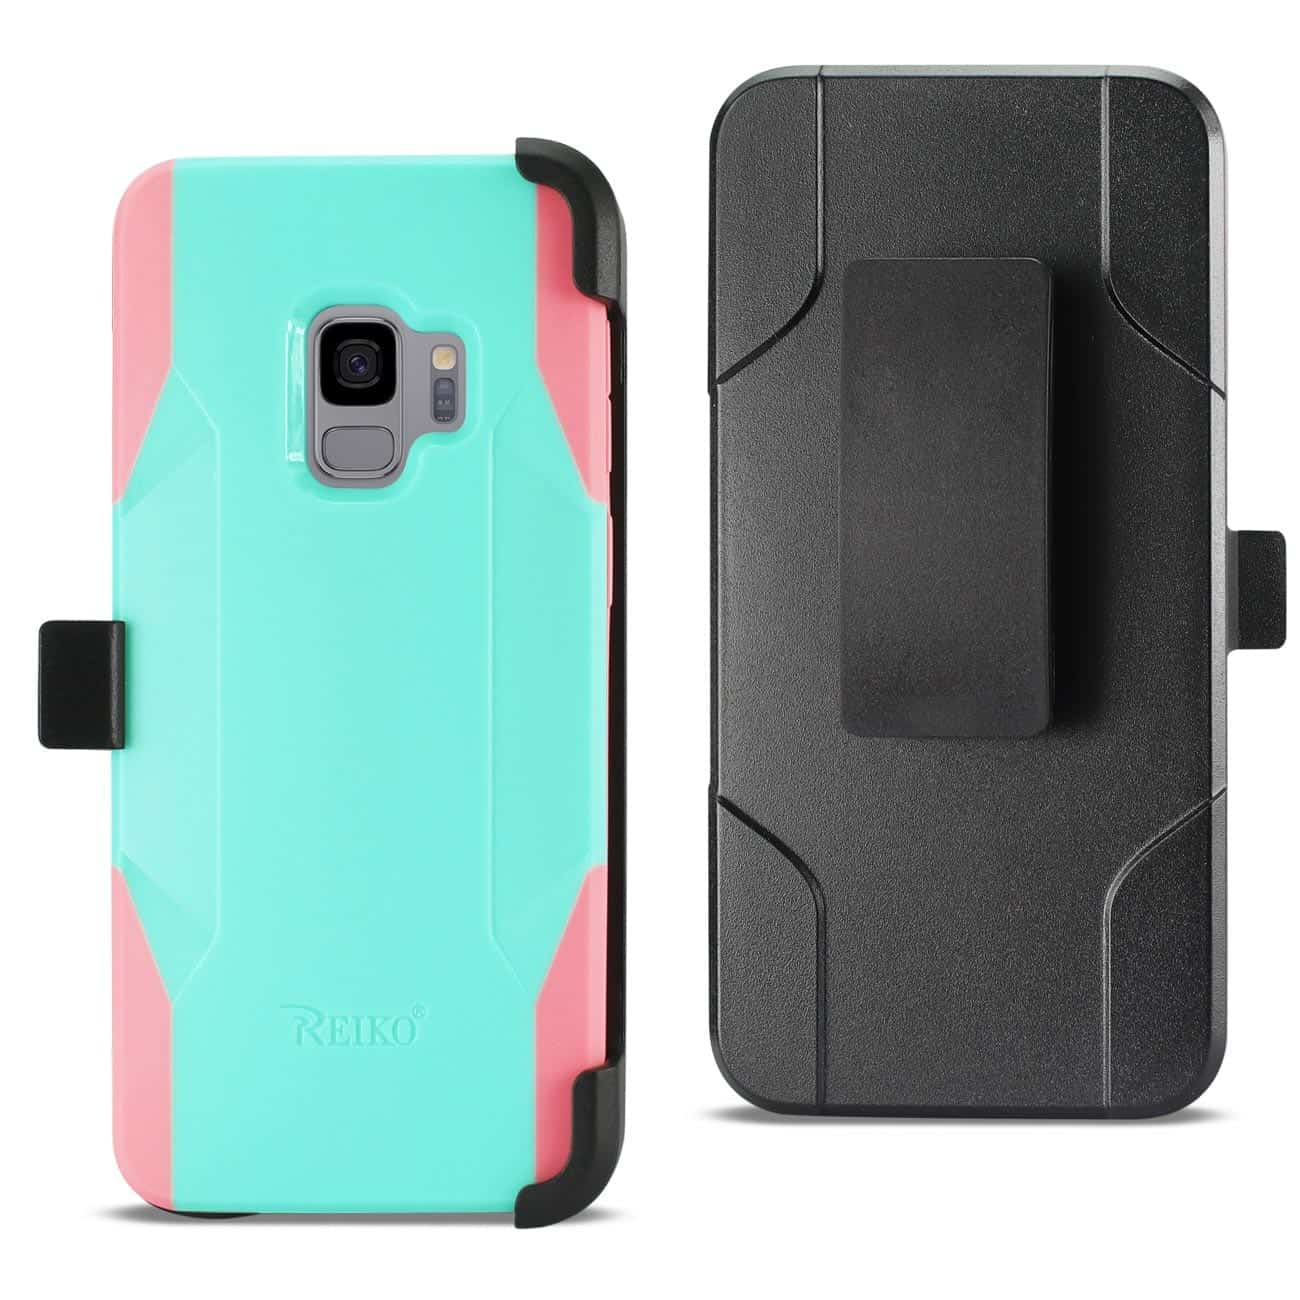 Samsung Galaxy S9 3-In-1 Hybrid Heavy Duty Holster Combo Case In Mint Green